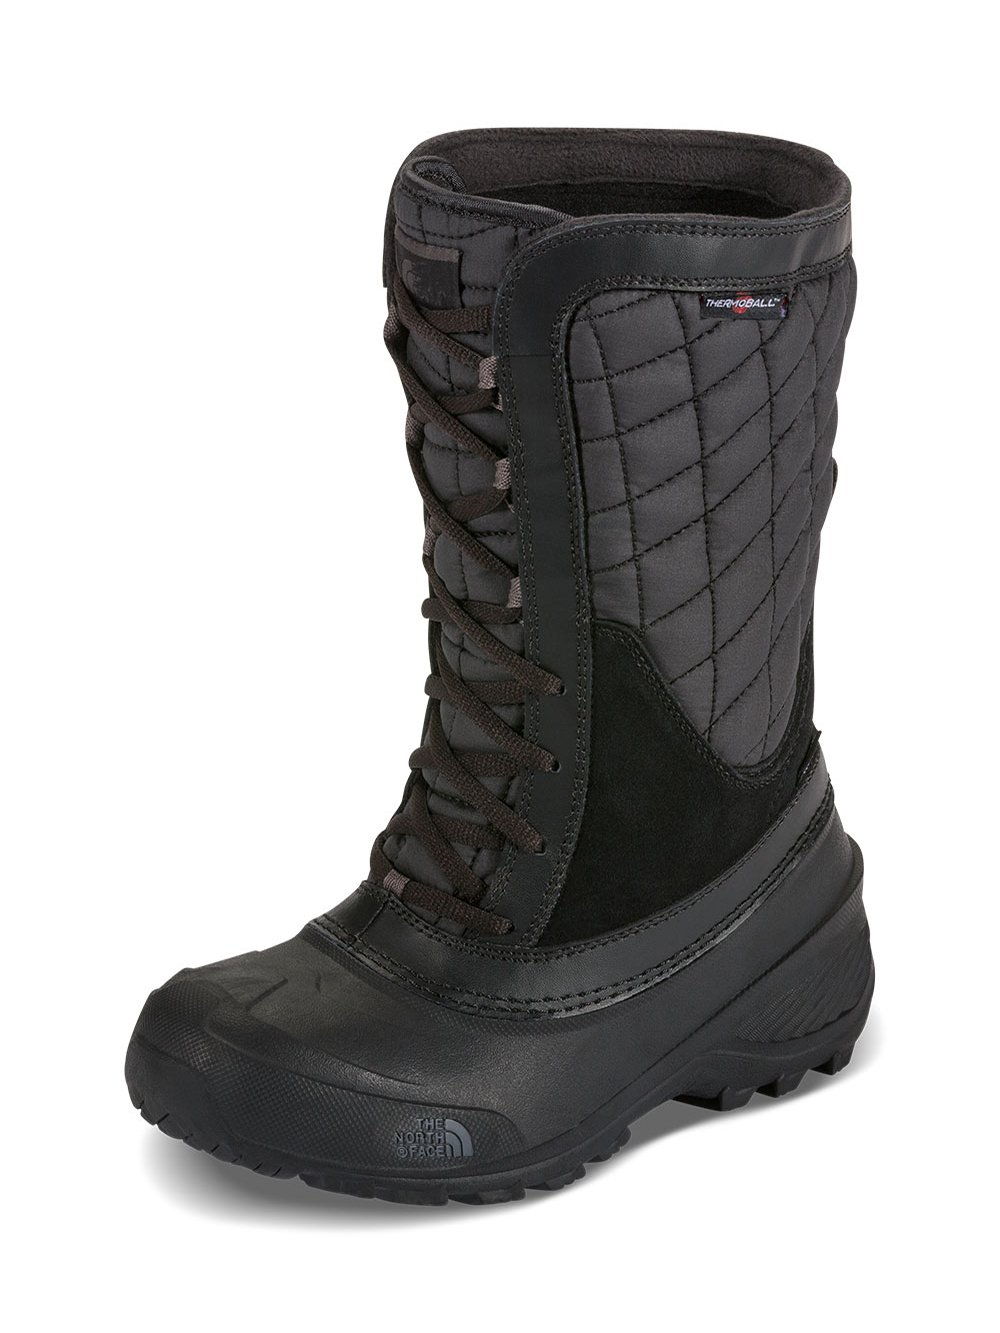 The North Face Thermoball Shellista Boot Girls' TNF Black/Dark Gull Grey 13